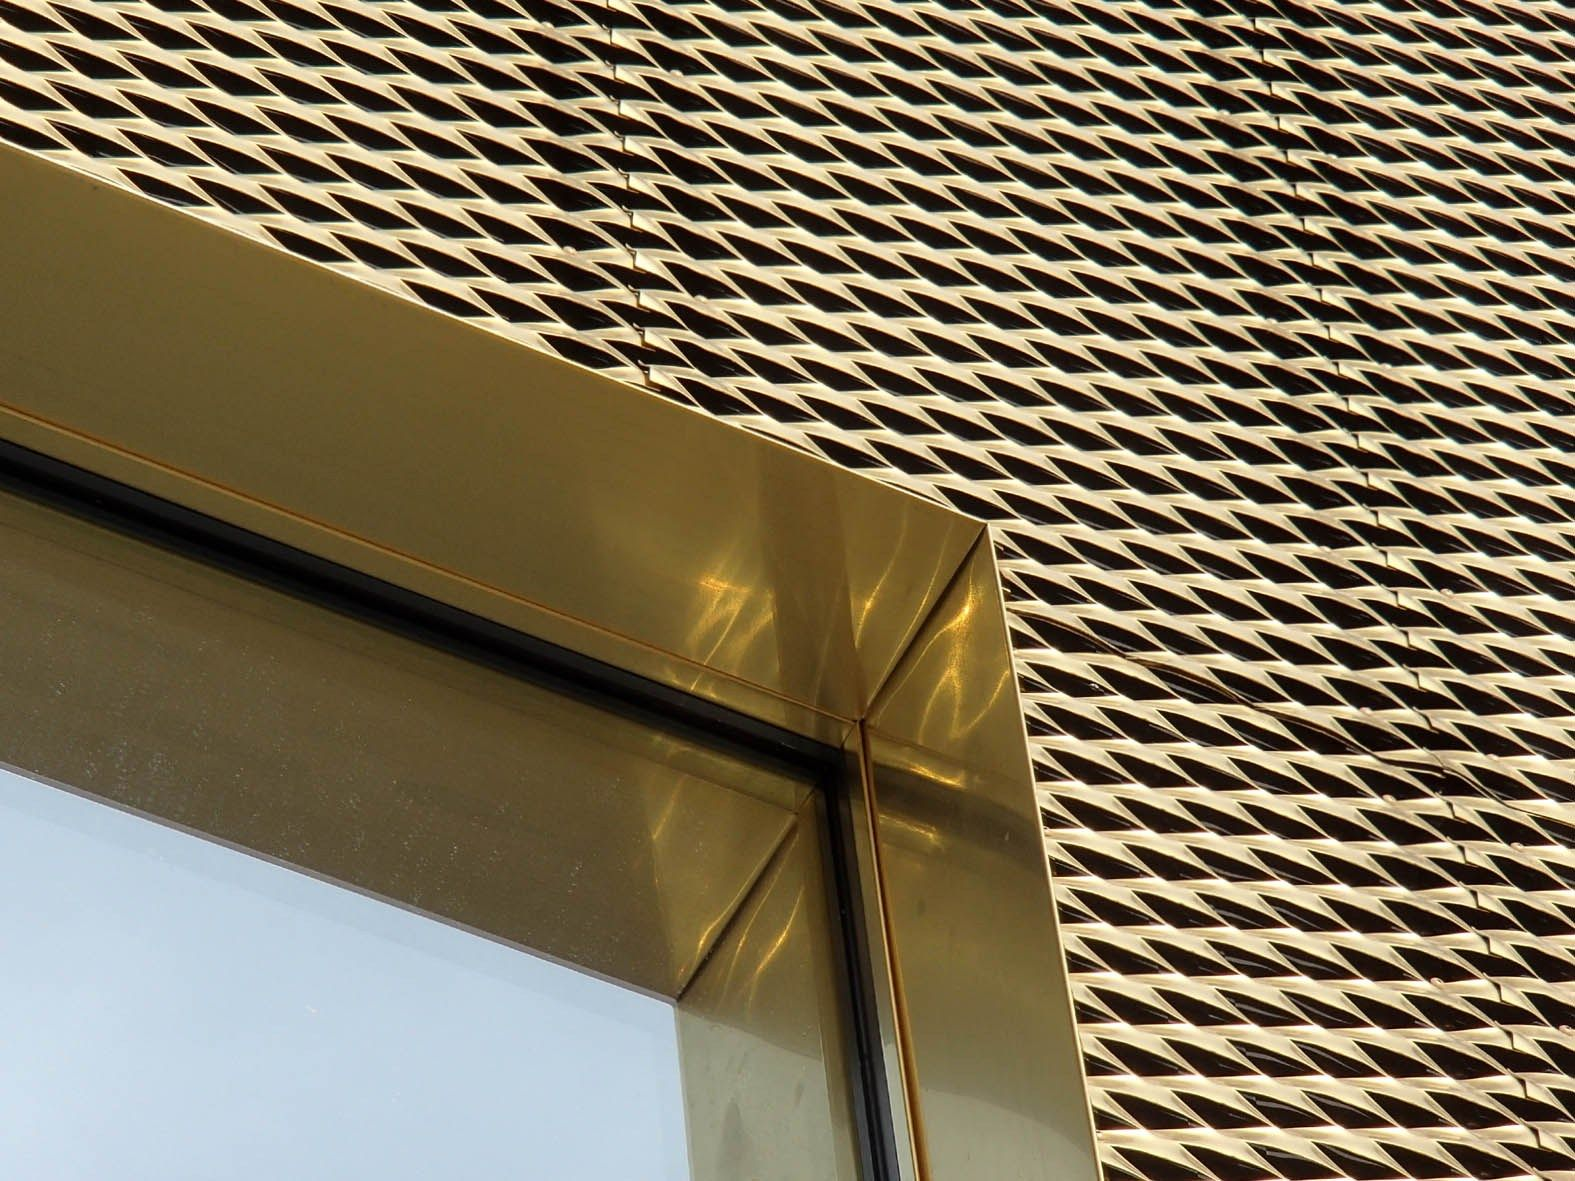 Metal Sheet And Panel For Roof Metal Sheet And Panel For Facade Tecu Gold Tecu Collection By Kme Italy S P A Facade Design Metal Facade Facade Architecture